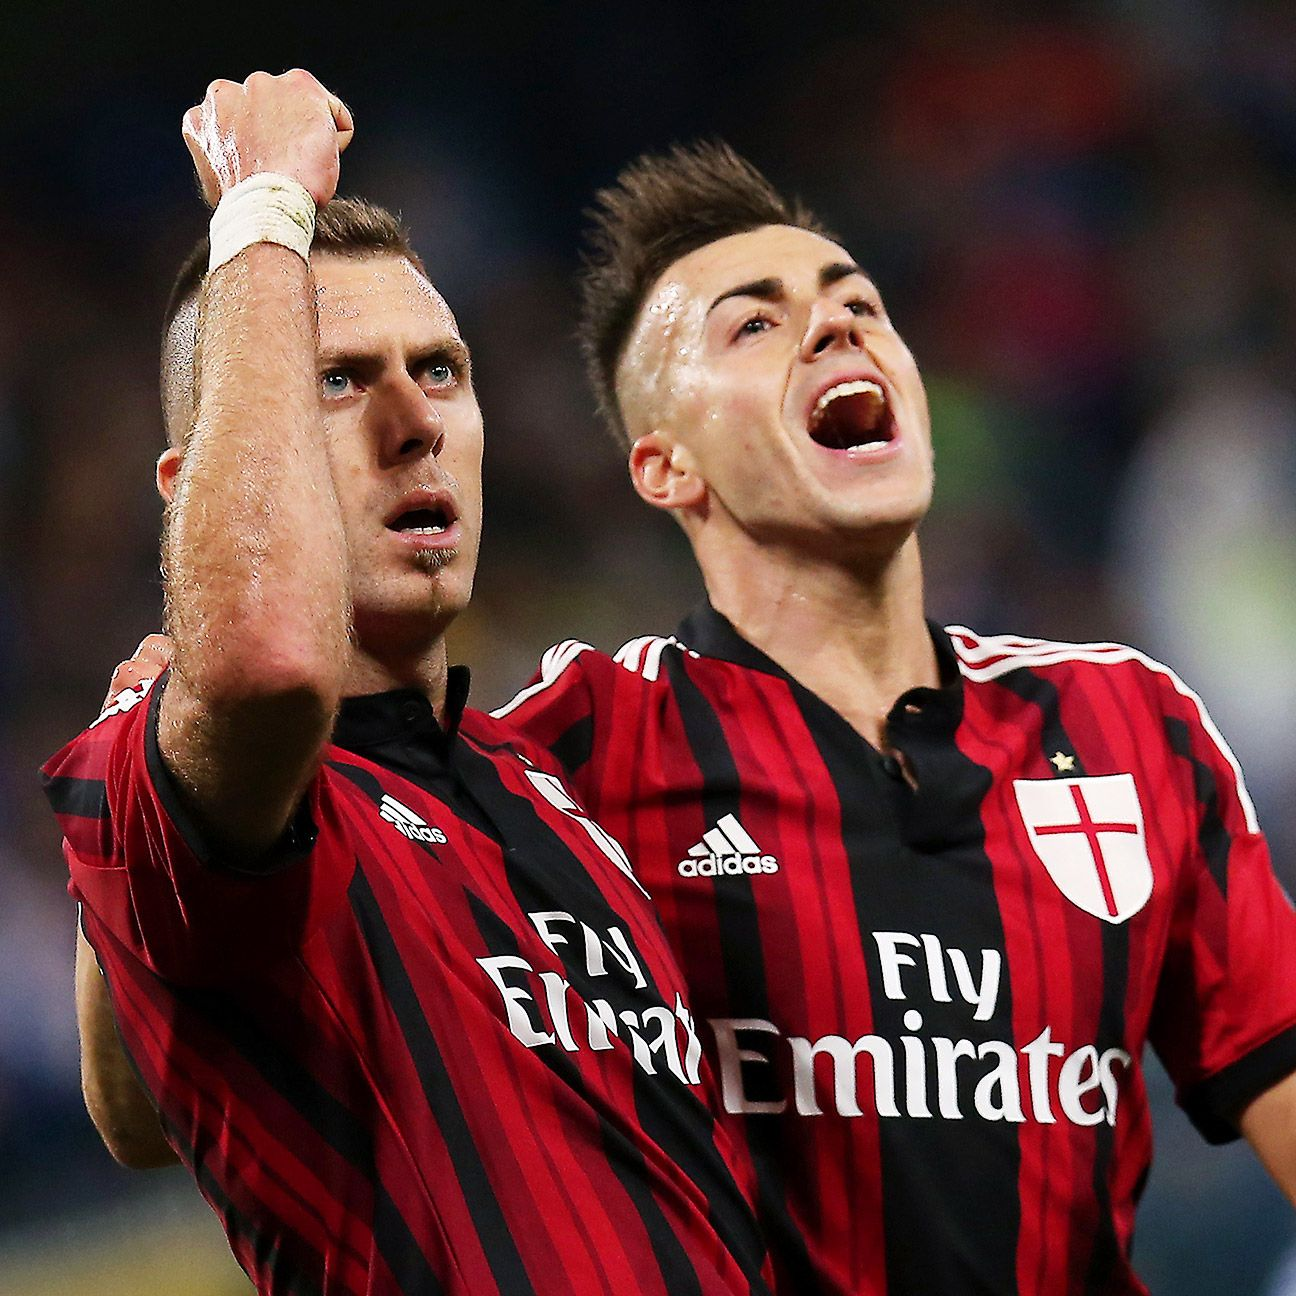 Milan fans will be relieved to see Stephan El Shaarawy's name on the scoresheet.